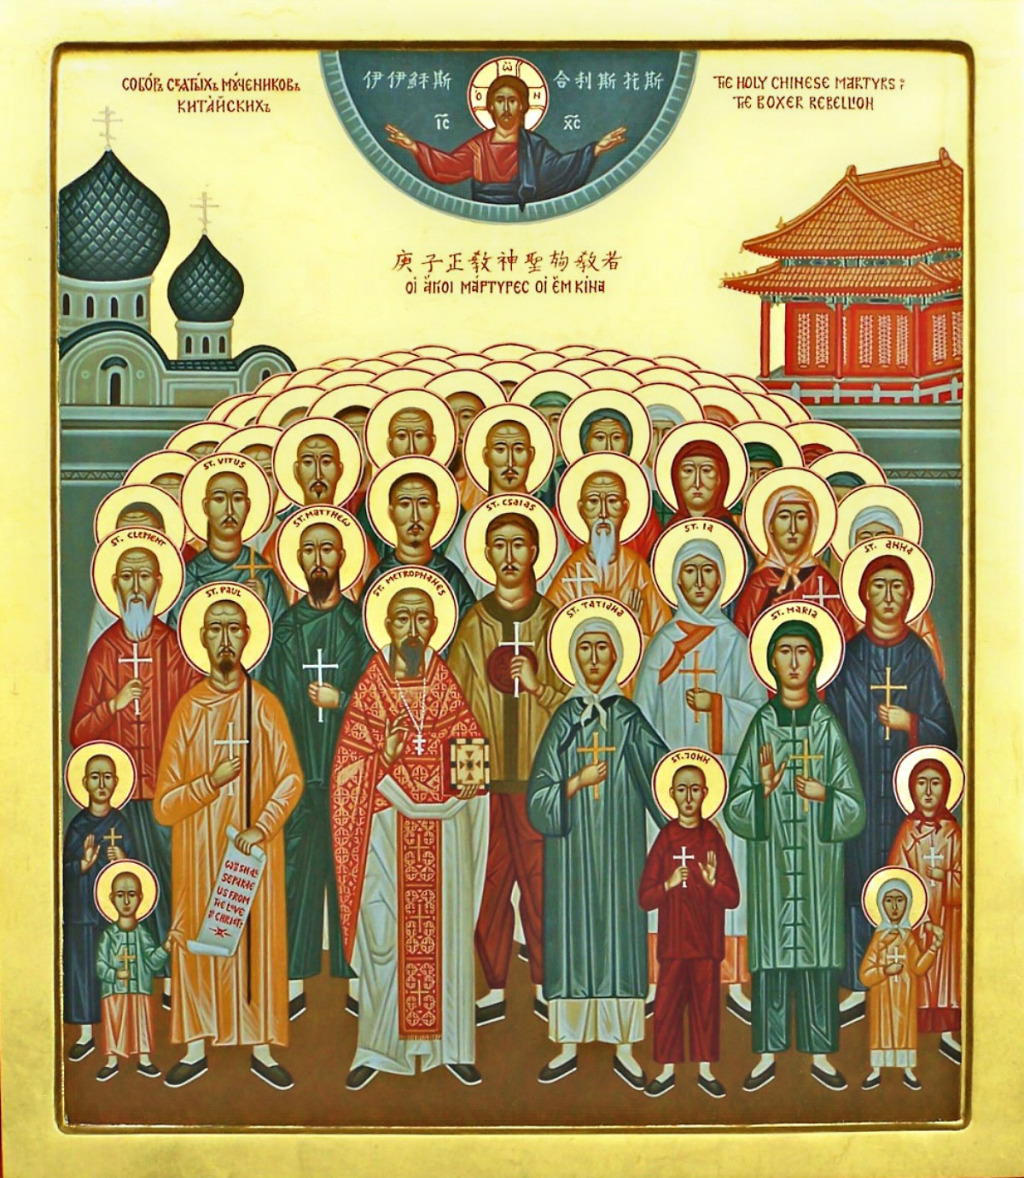 Icon of the Saints Chinese Martyrs by the hand of Ol Chernyak